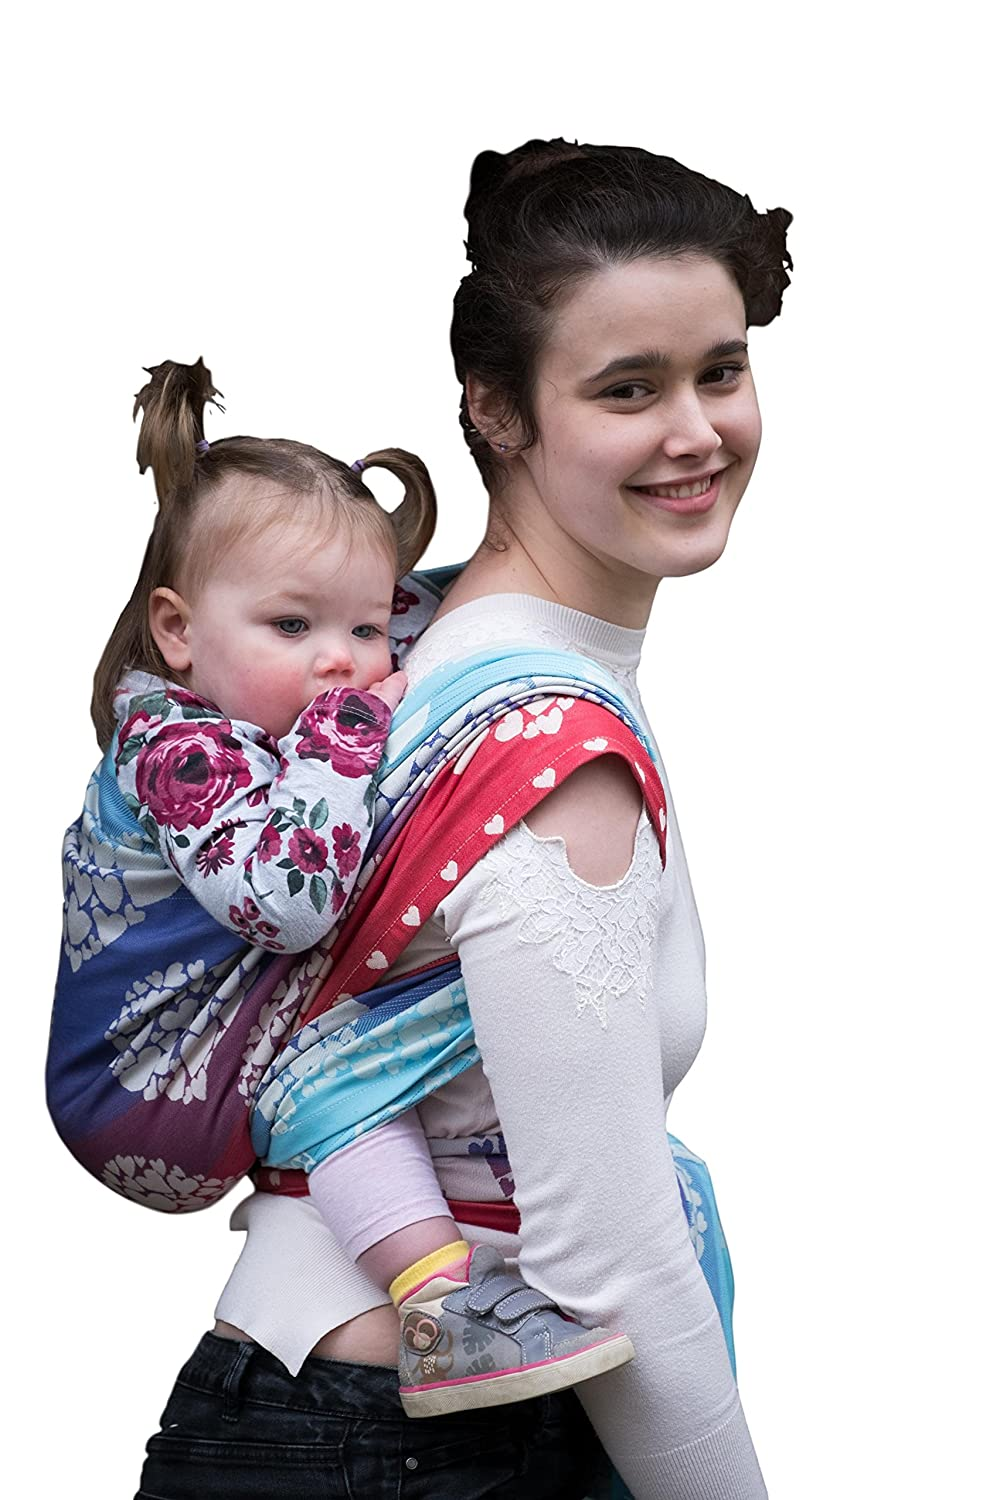 Joy and Joe Benevolence Allure Baby Woven Wrap Sling | Made in The UK | Boxed with Full Colour Instruction Booklet (M - 3.6m x 0.7m) Joy and Joe Ltd